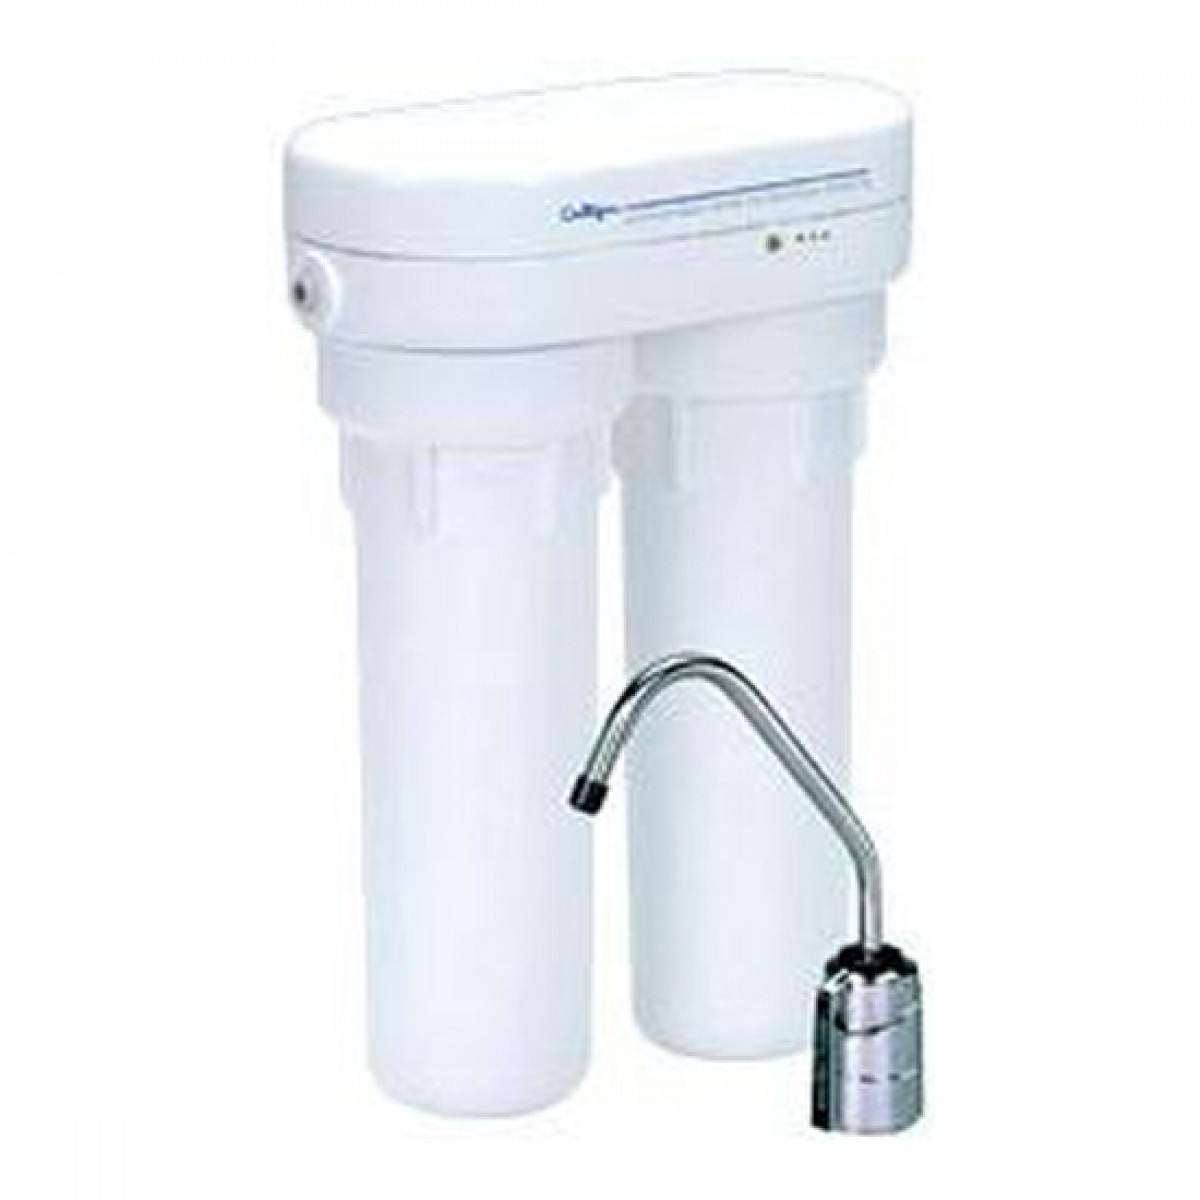 Home Water Treatment Systems Home Builder Water Filters And Home Builder Water Treatment